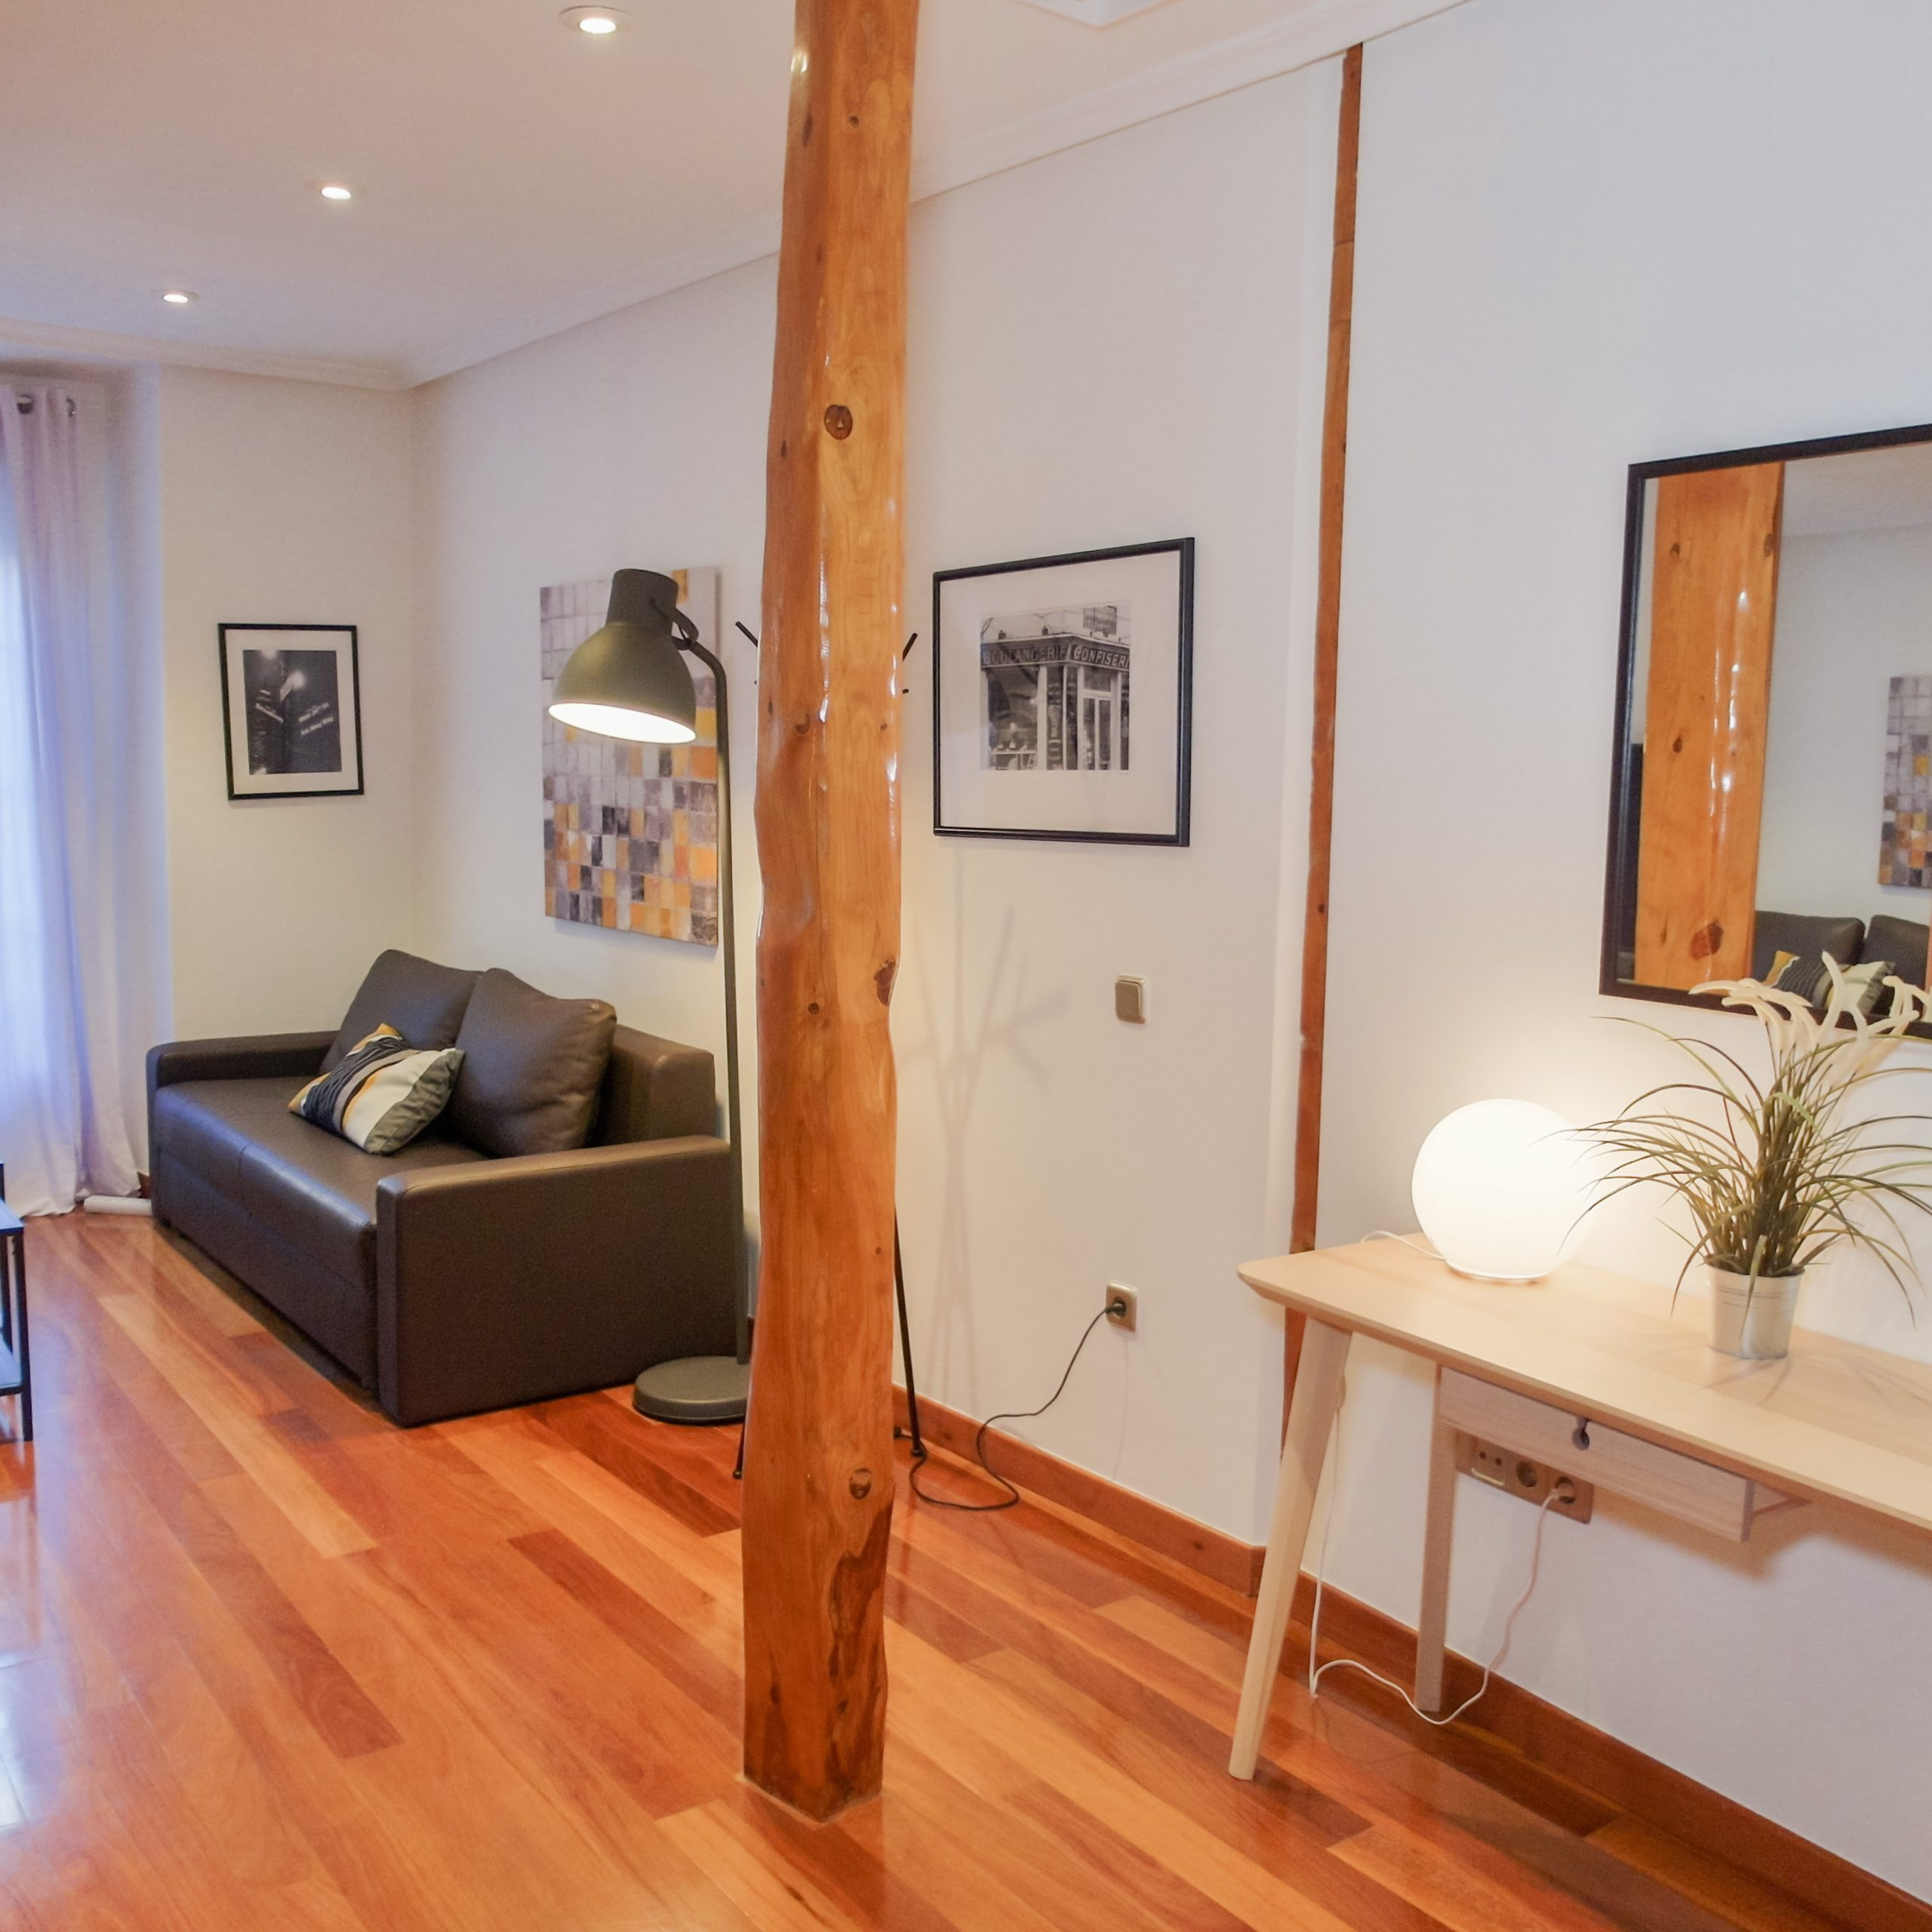 Flat in Madrid city center for expats